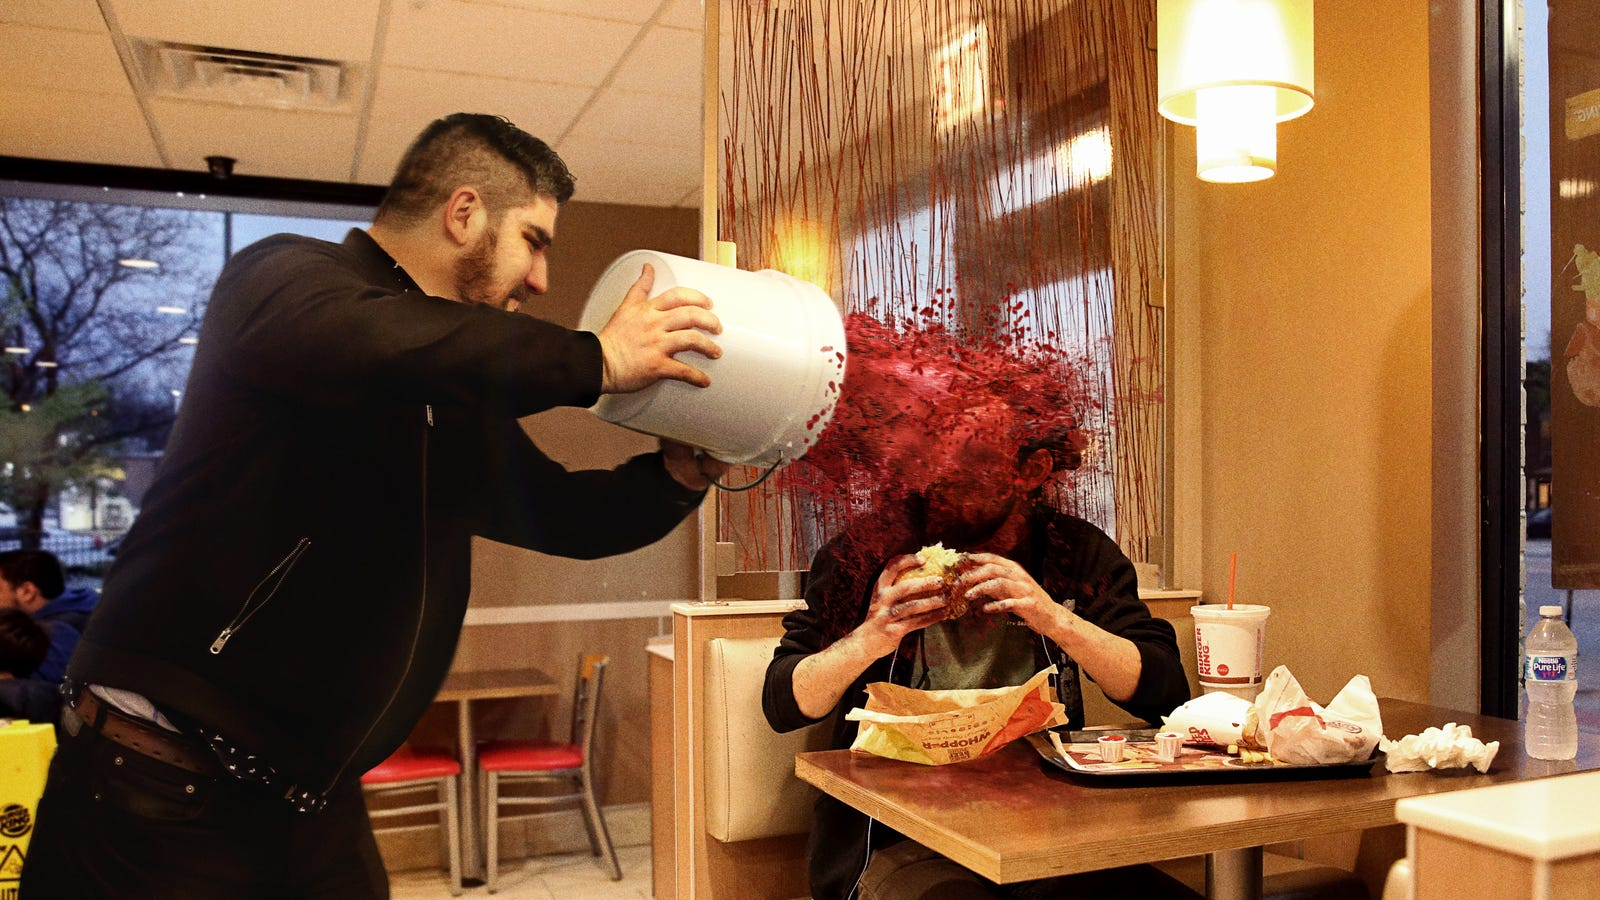 Diners Eating Impossible Burgers Doused With Beet Juice By Protesting Meat-Rights Activists